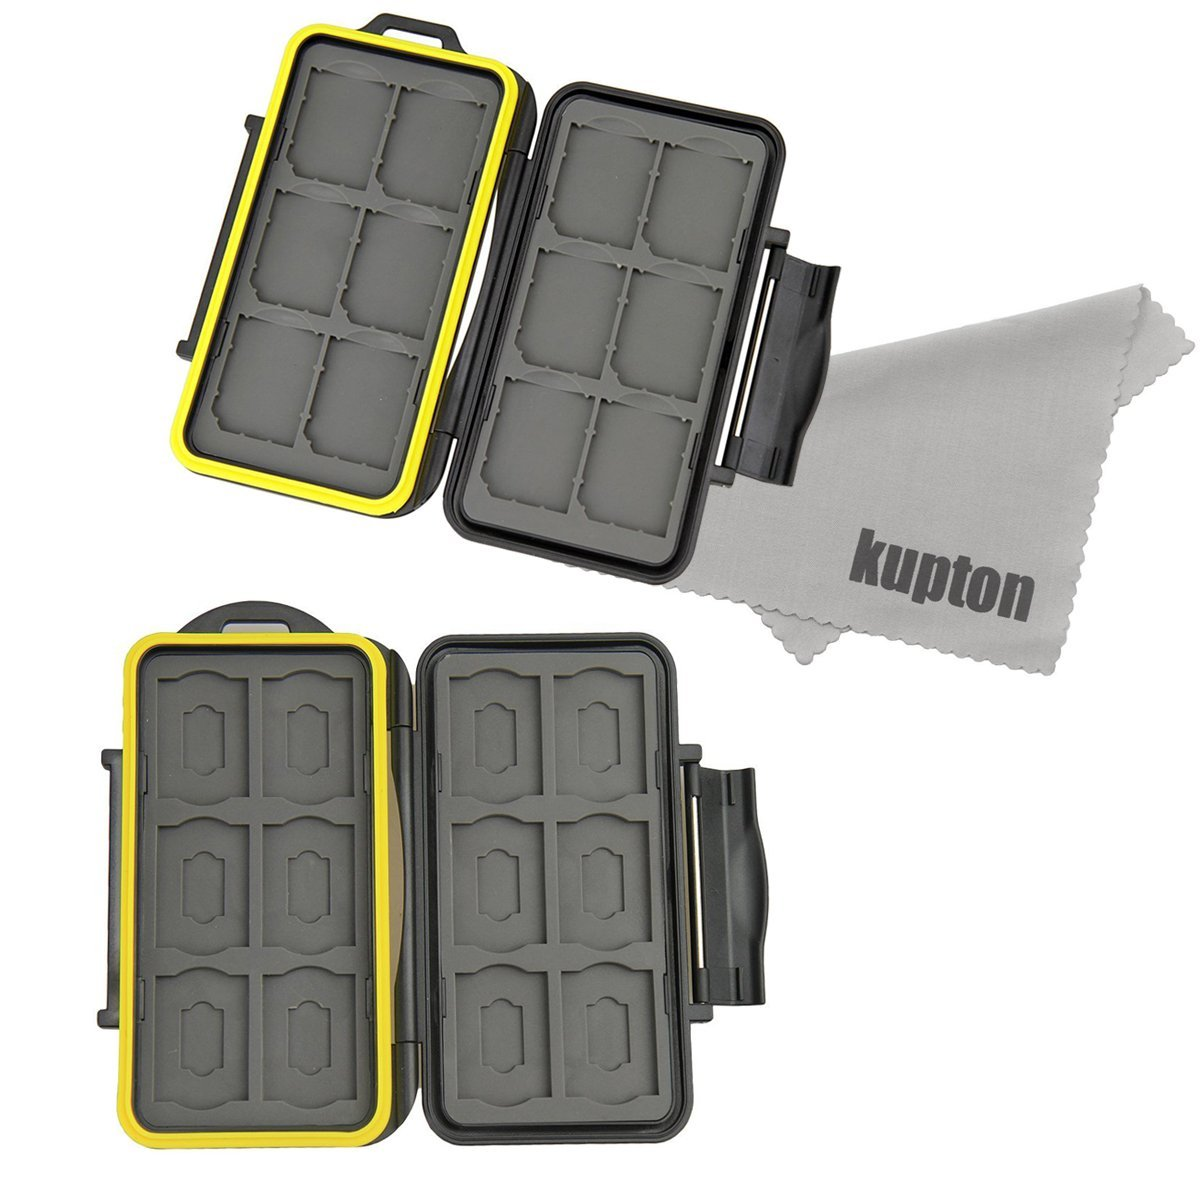 Kupton Memory Card Case Holder Water-resistance Storage Protector Box: 12 Slot + 24 Slot for SD Mrico SD SDHC SDXC Memory Card